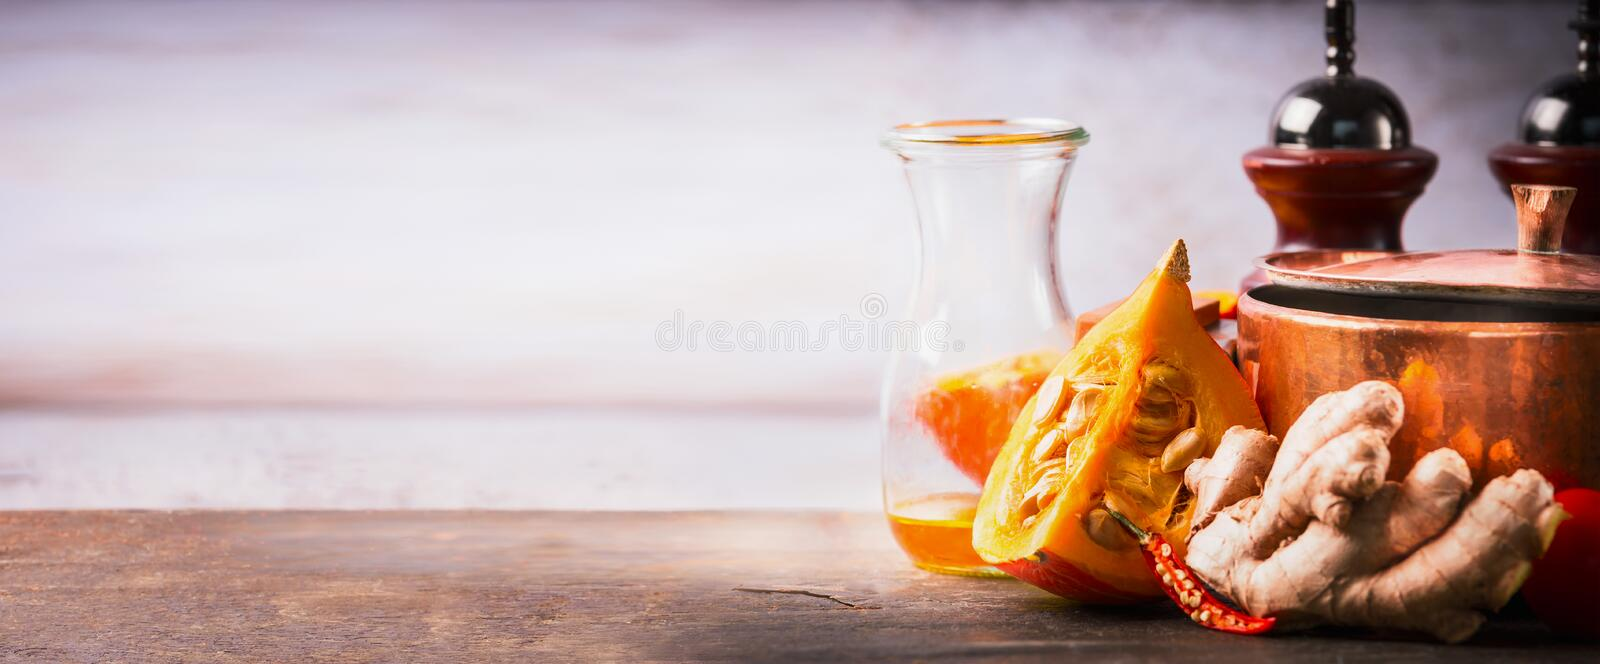 Pumpkin on kitchen desk table with cooking pot, oil and ginger, front view. Food background for Autumn cooking inspiration. And Recipes, banner stock images